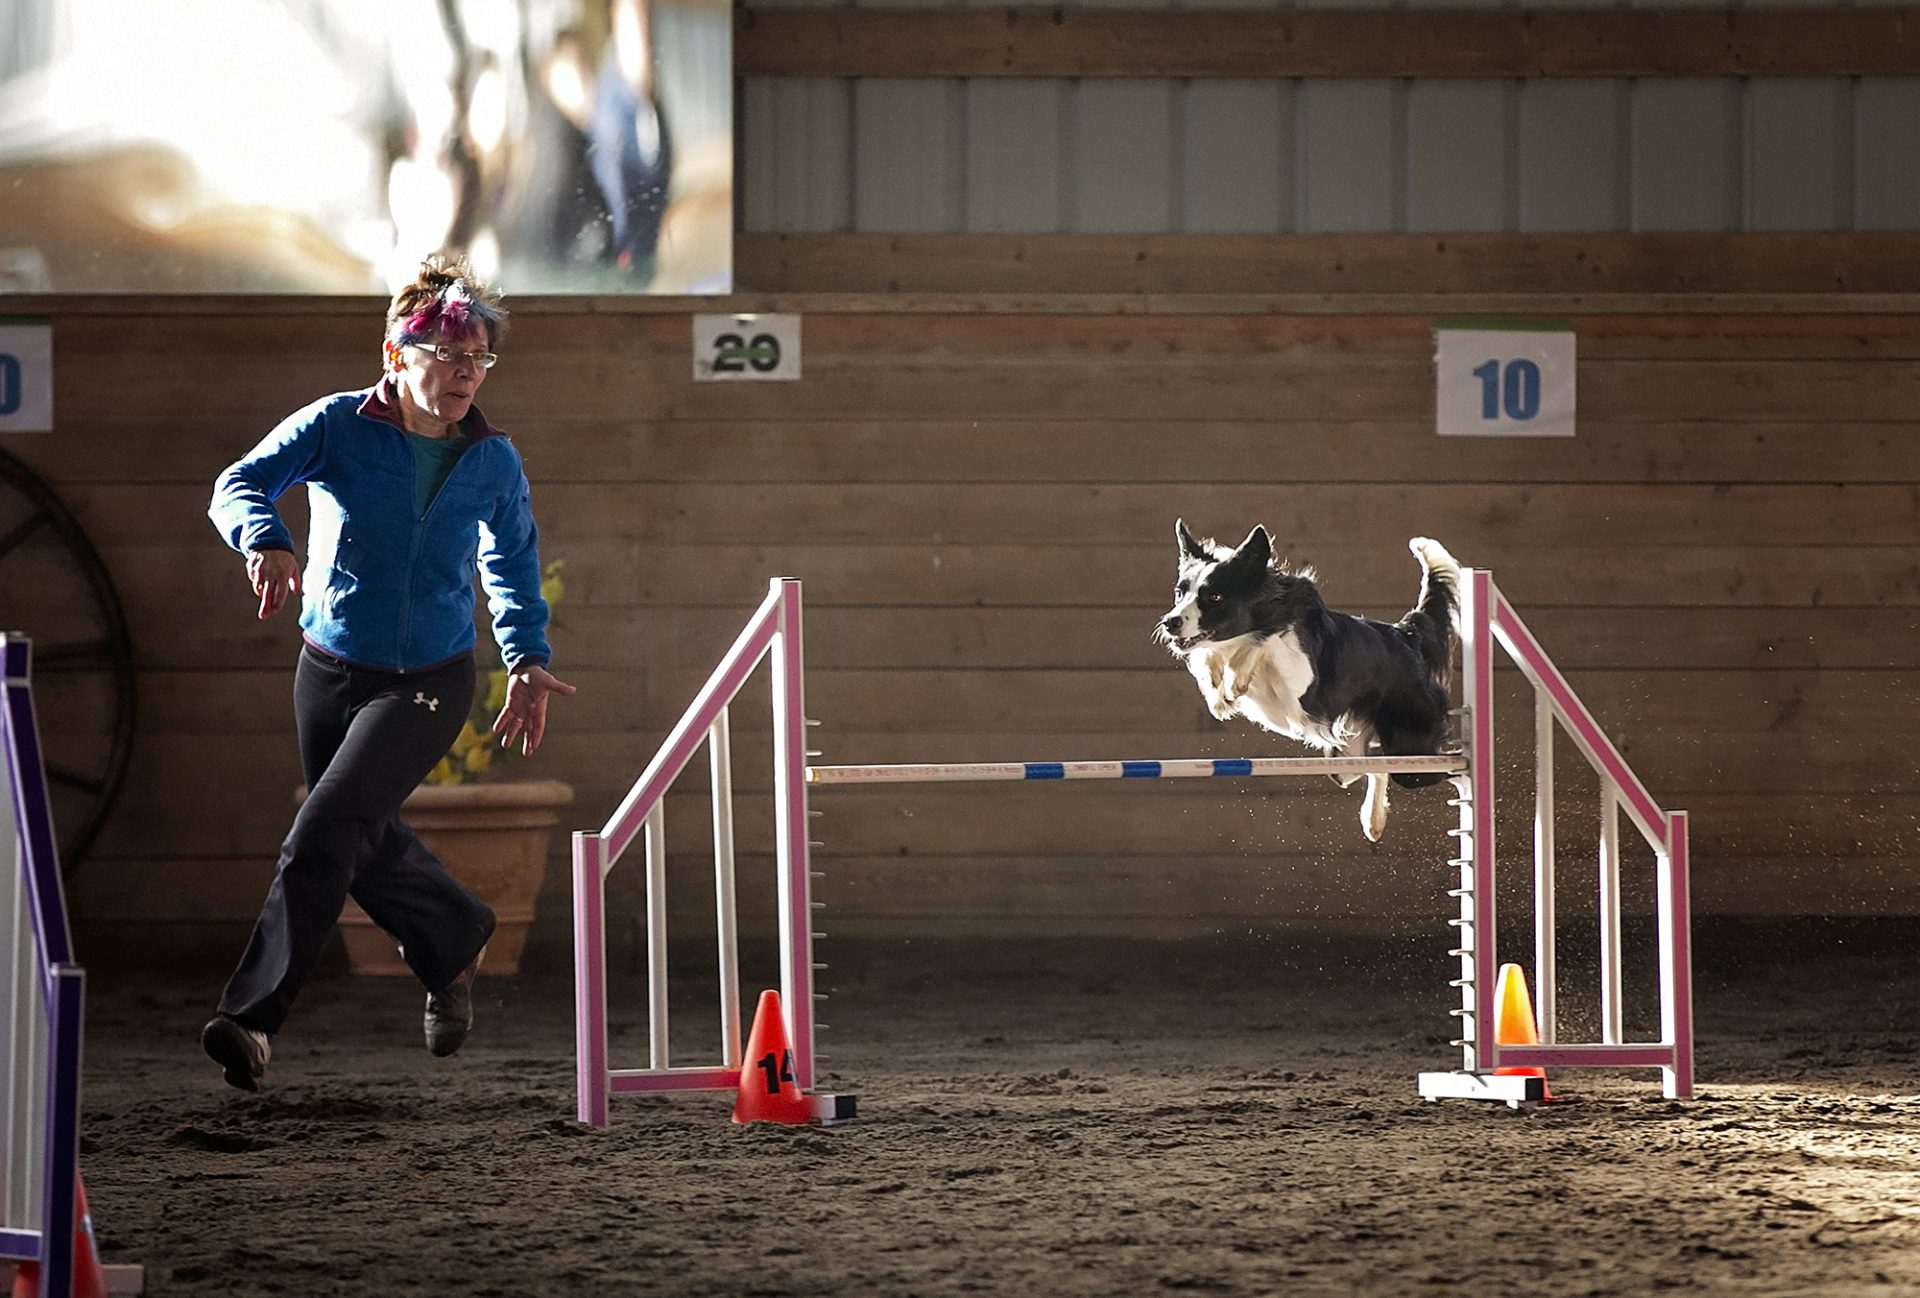 border collie over jump in dog agility